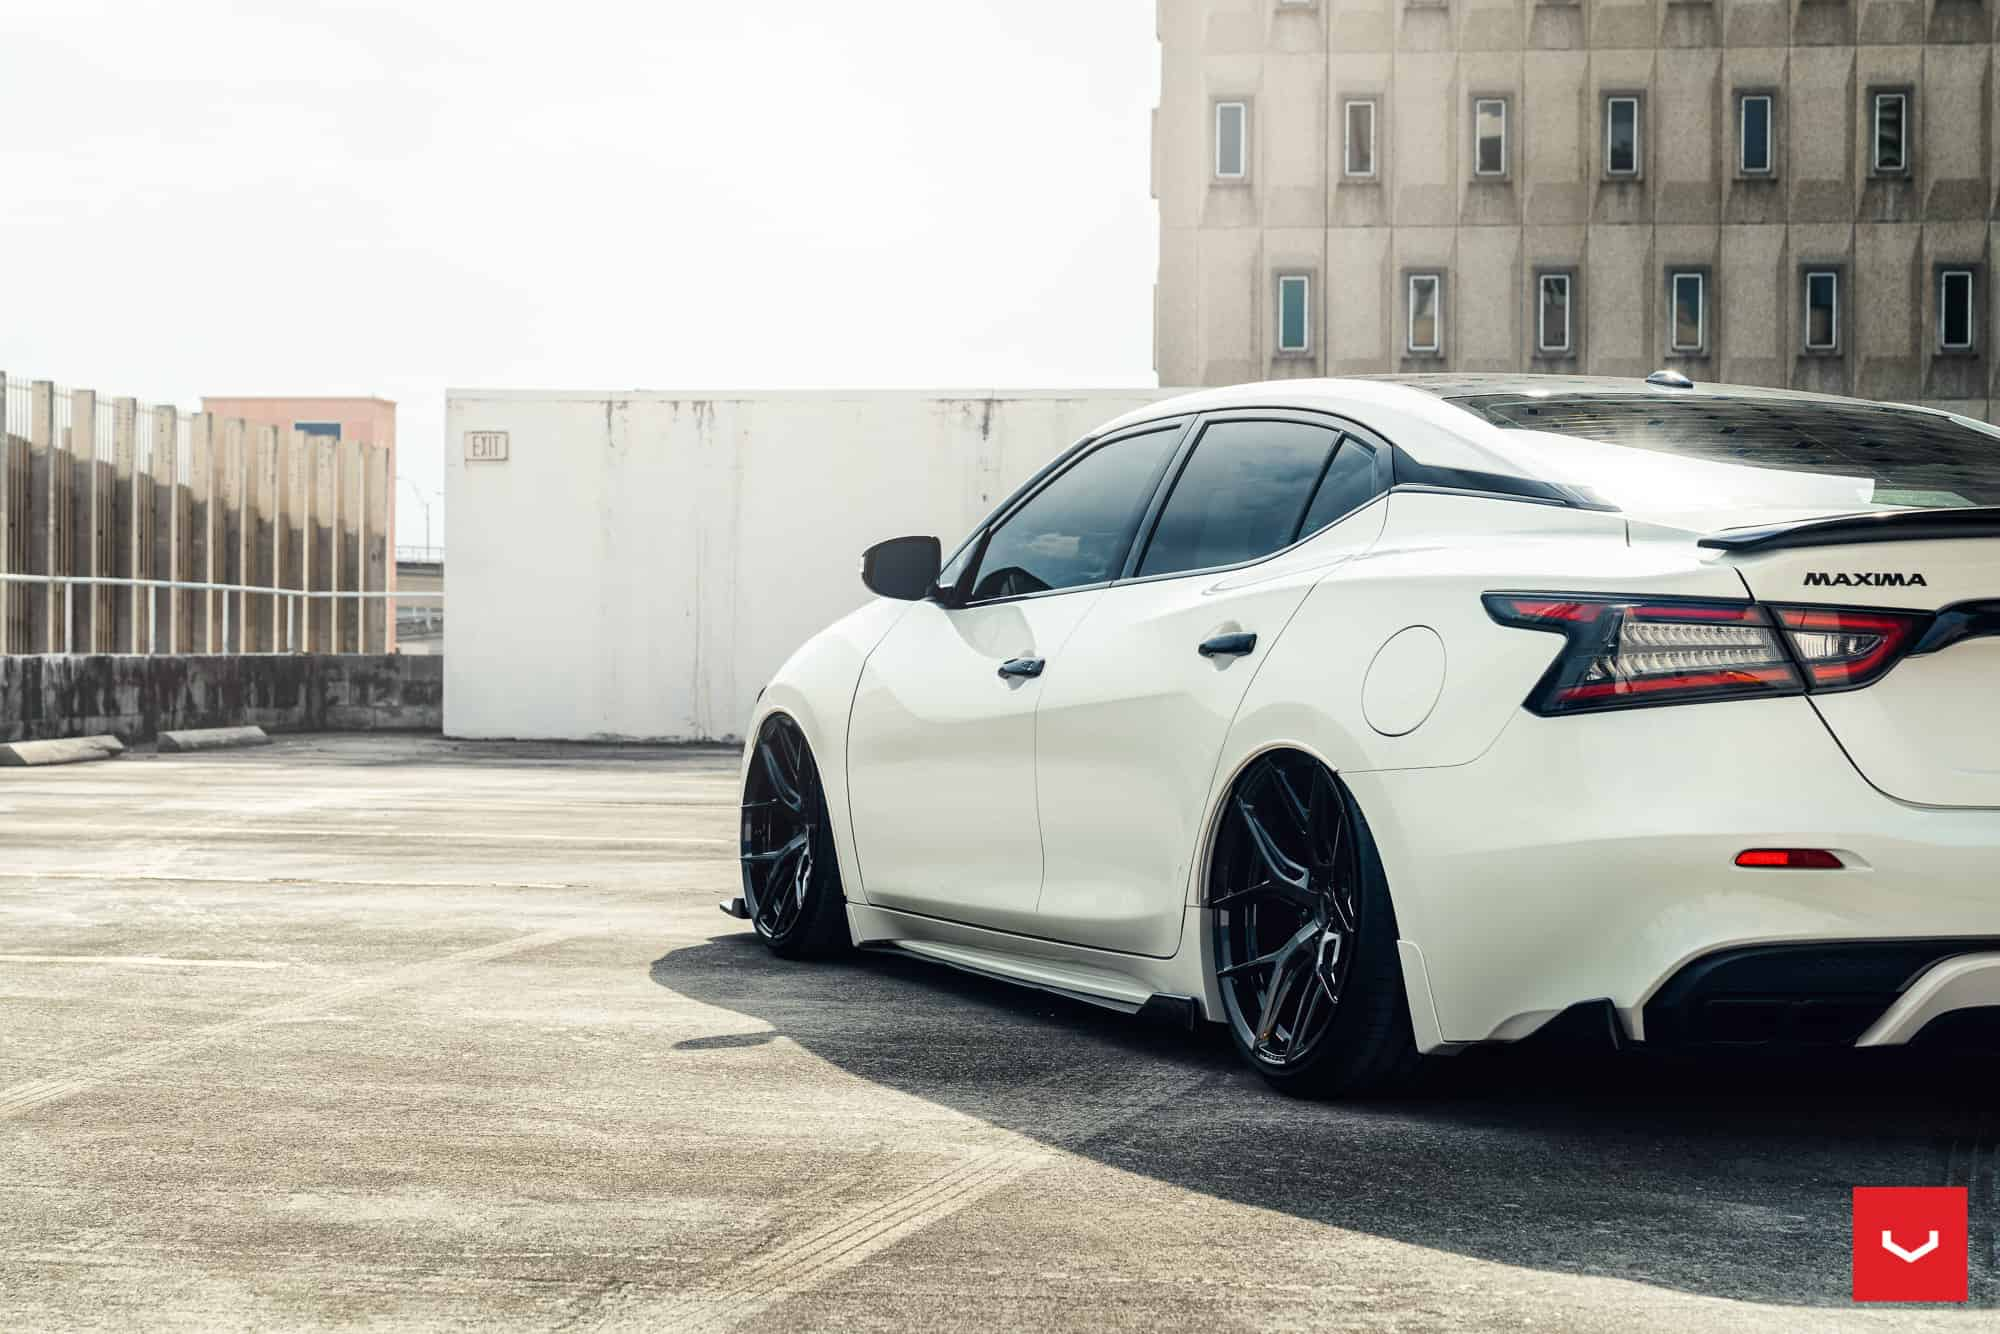 Nissan Maxima RT Gets Vossen Wheels & Aero kit